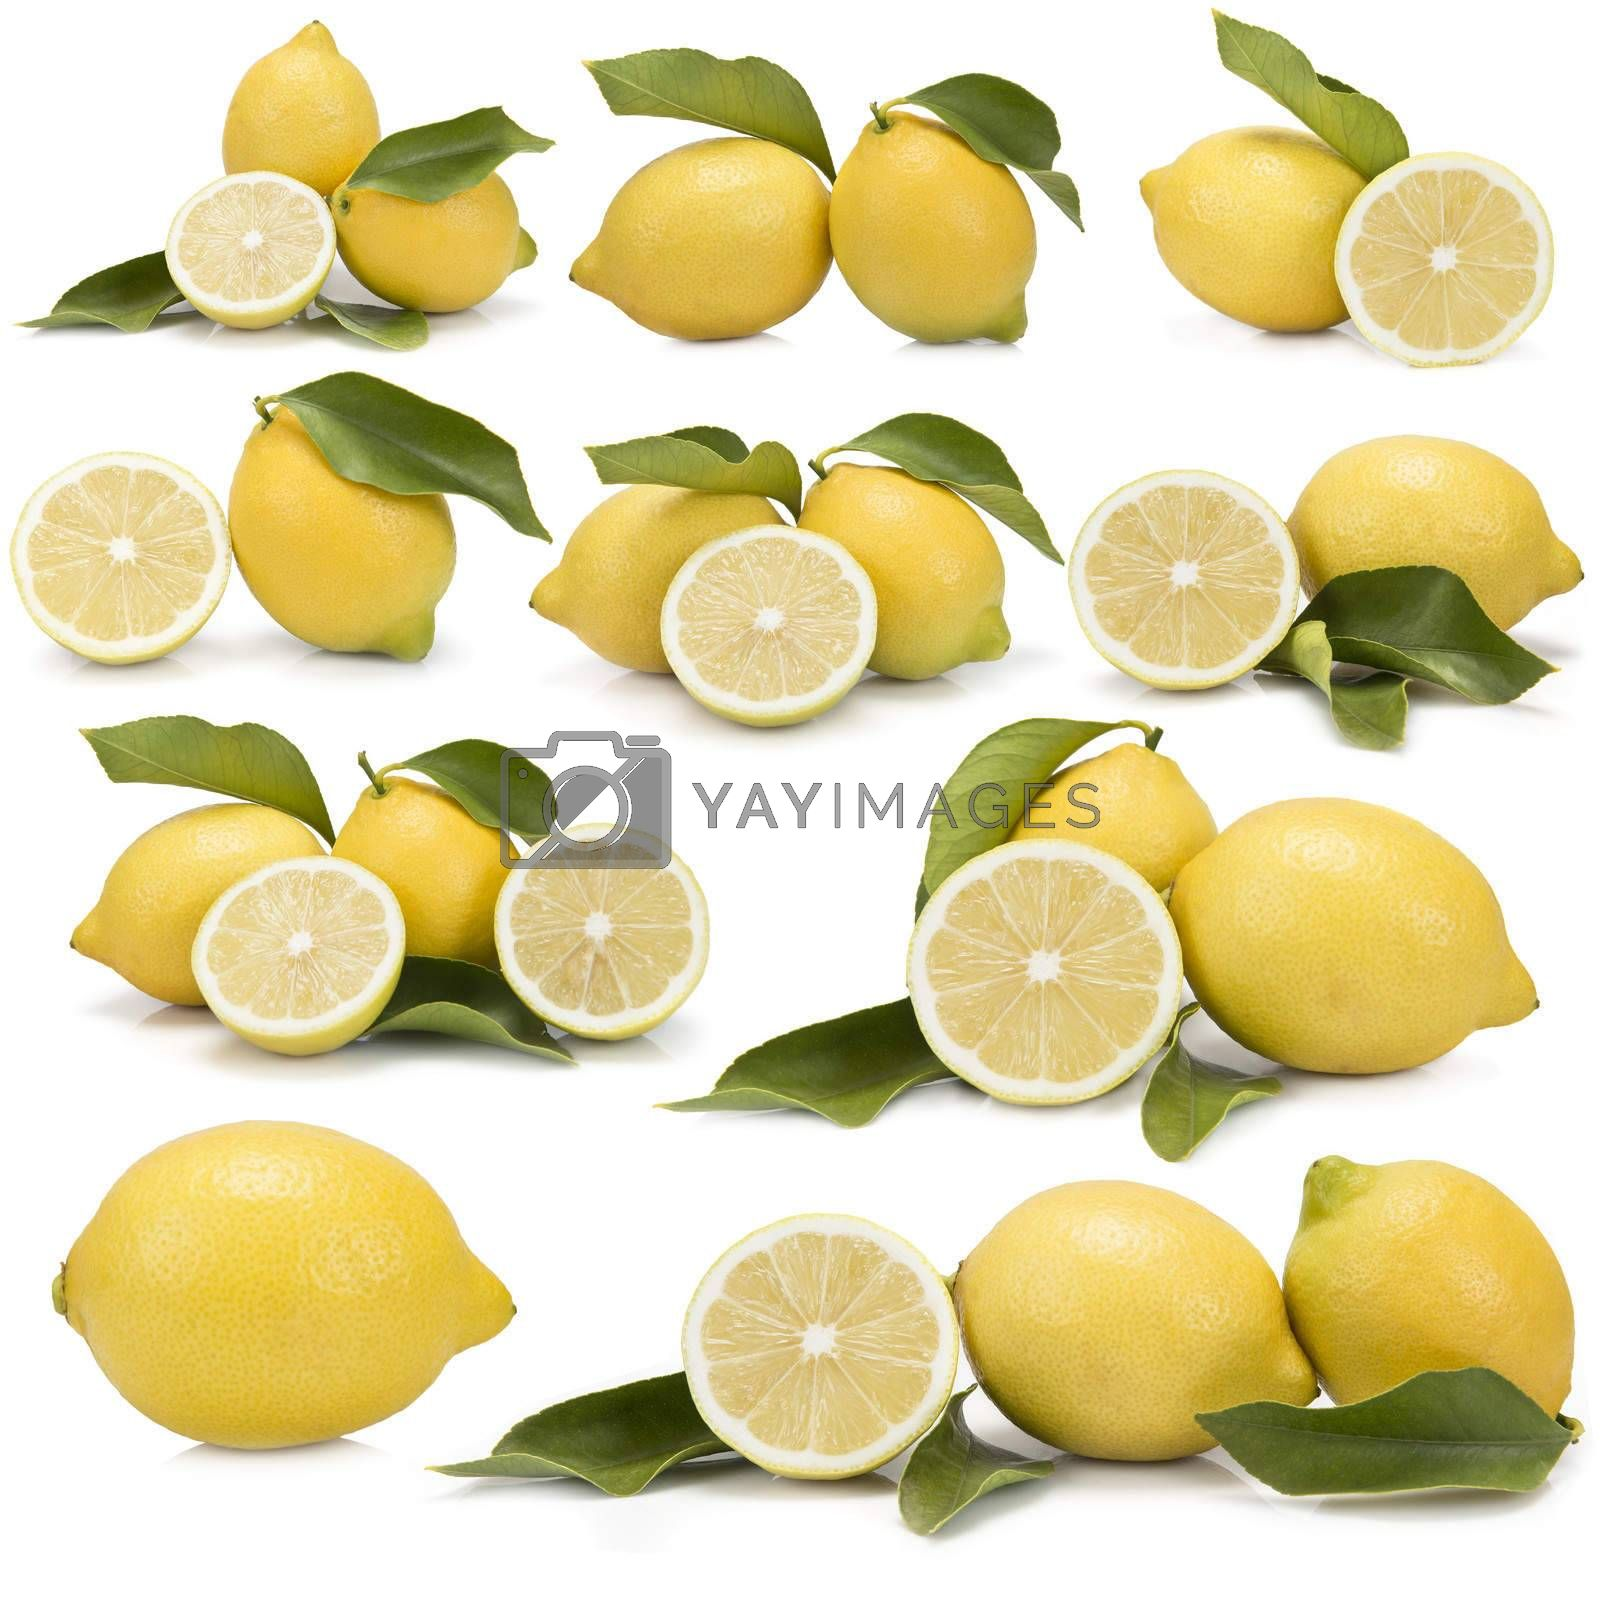 Great set of photographs of lemons with leaves isolated over a white background